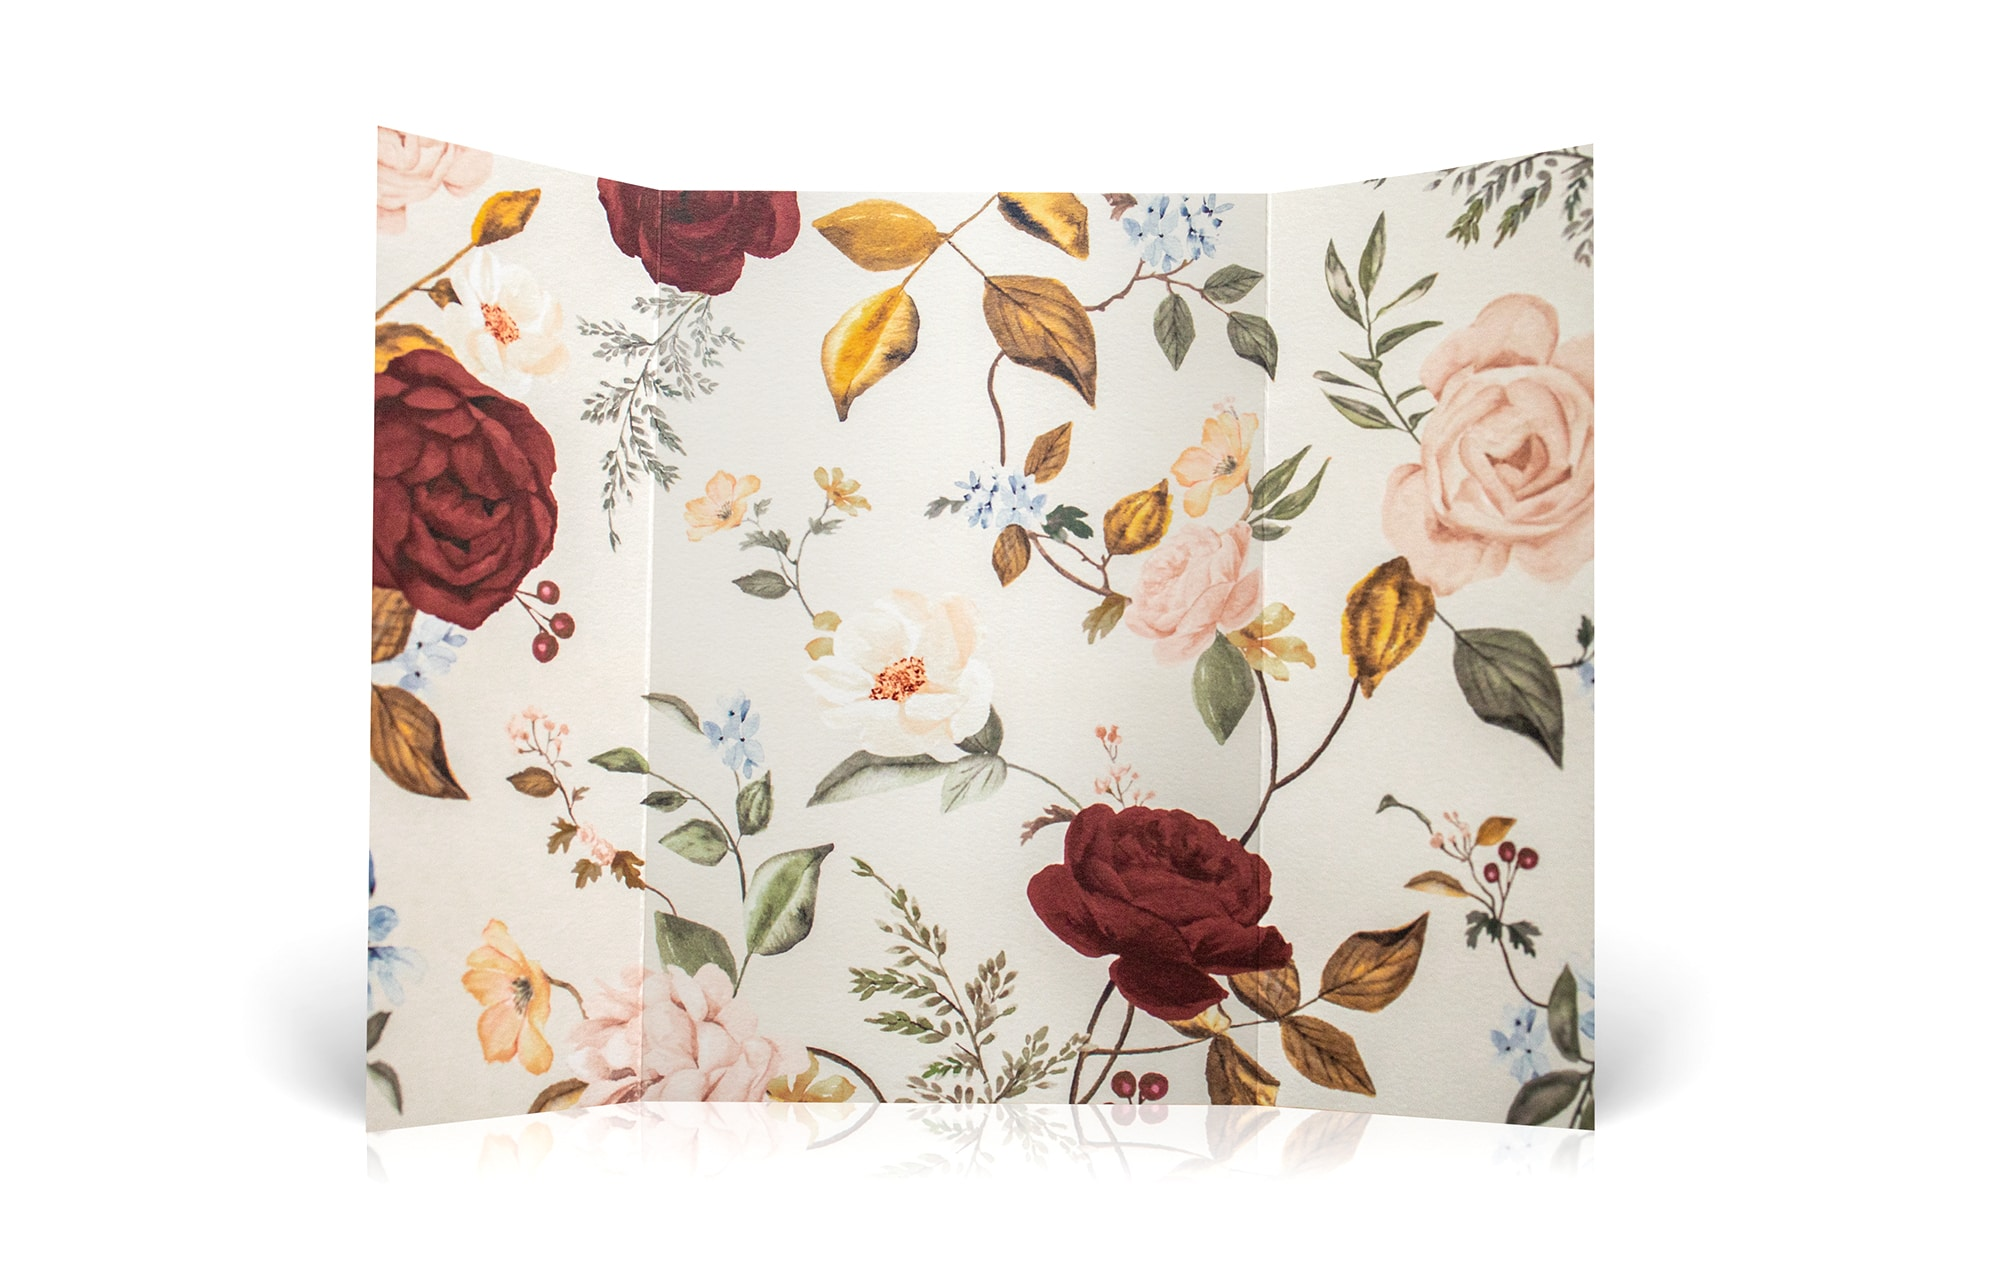 Gatefold wrap with roses